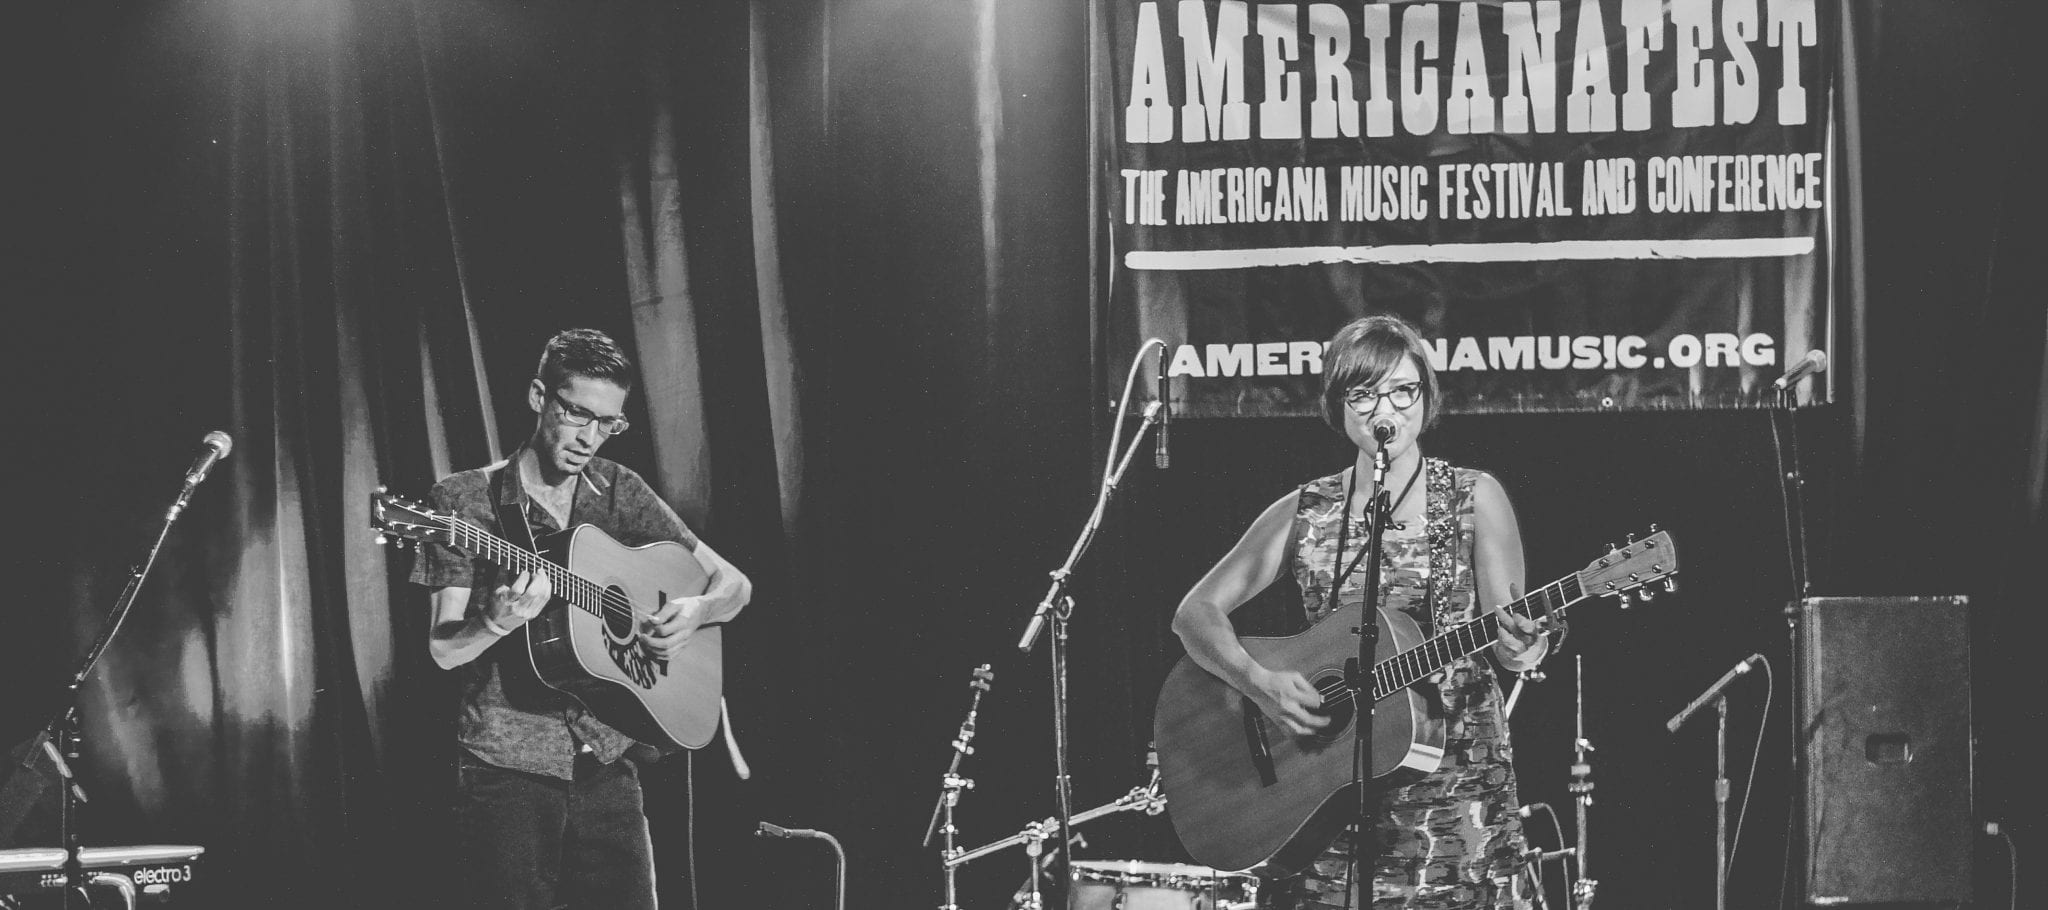 Carter Sampson at AmericanaFest 2017